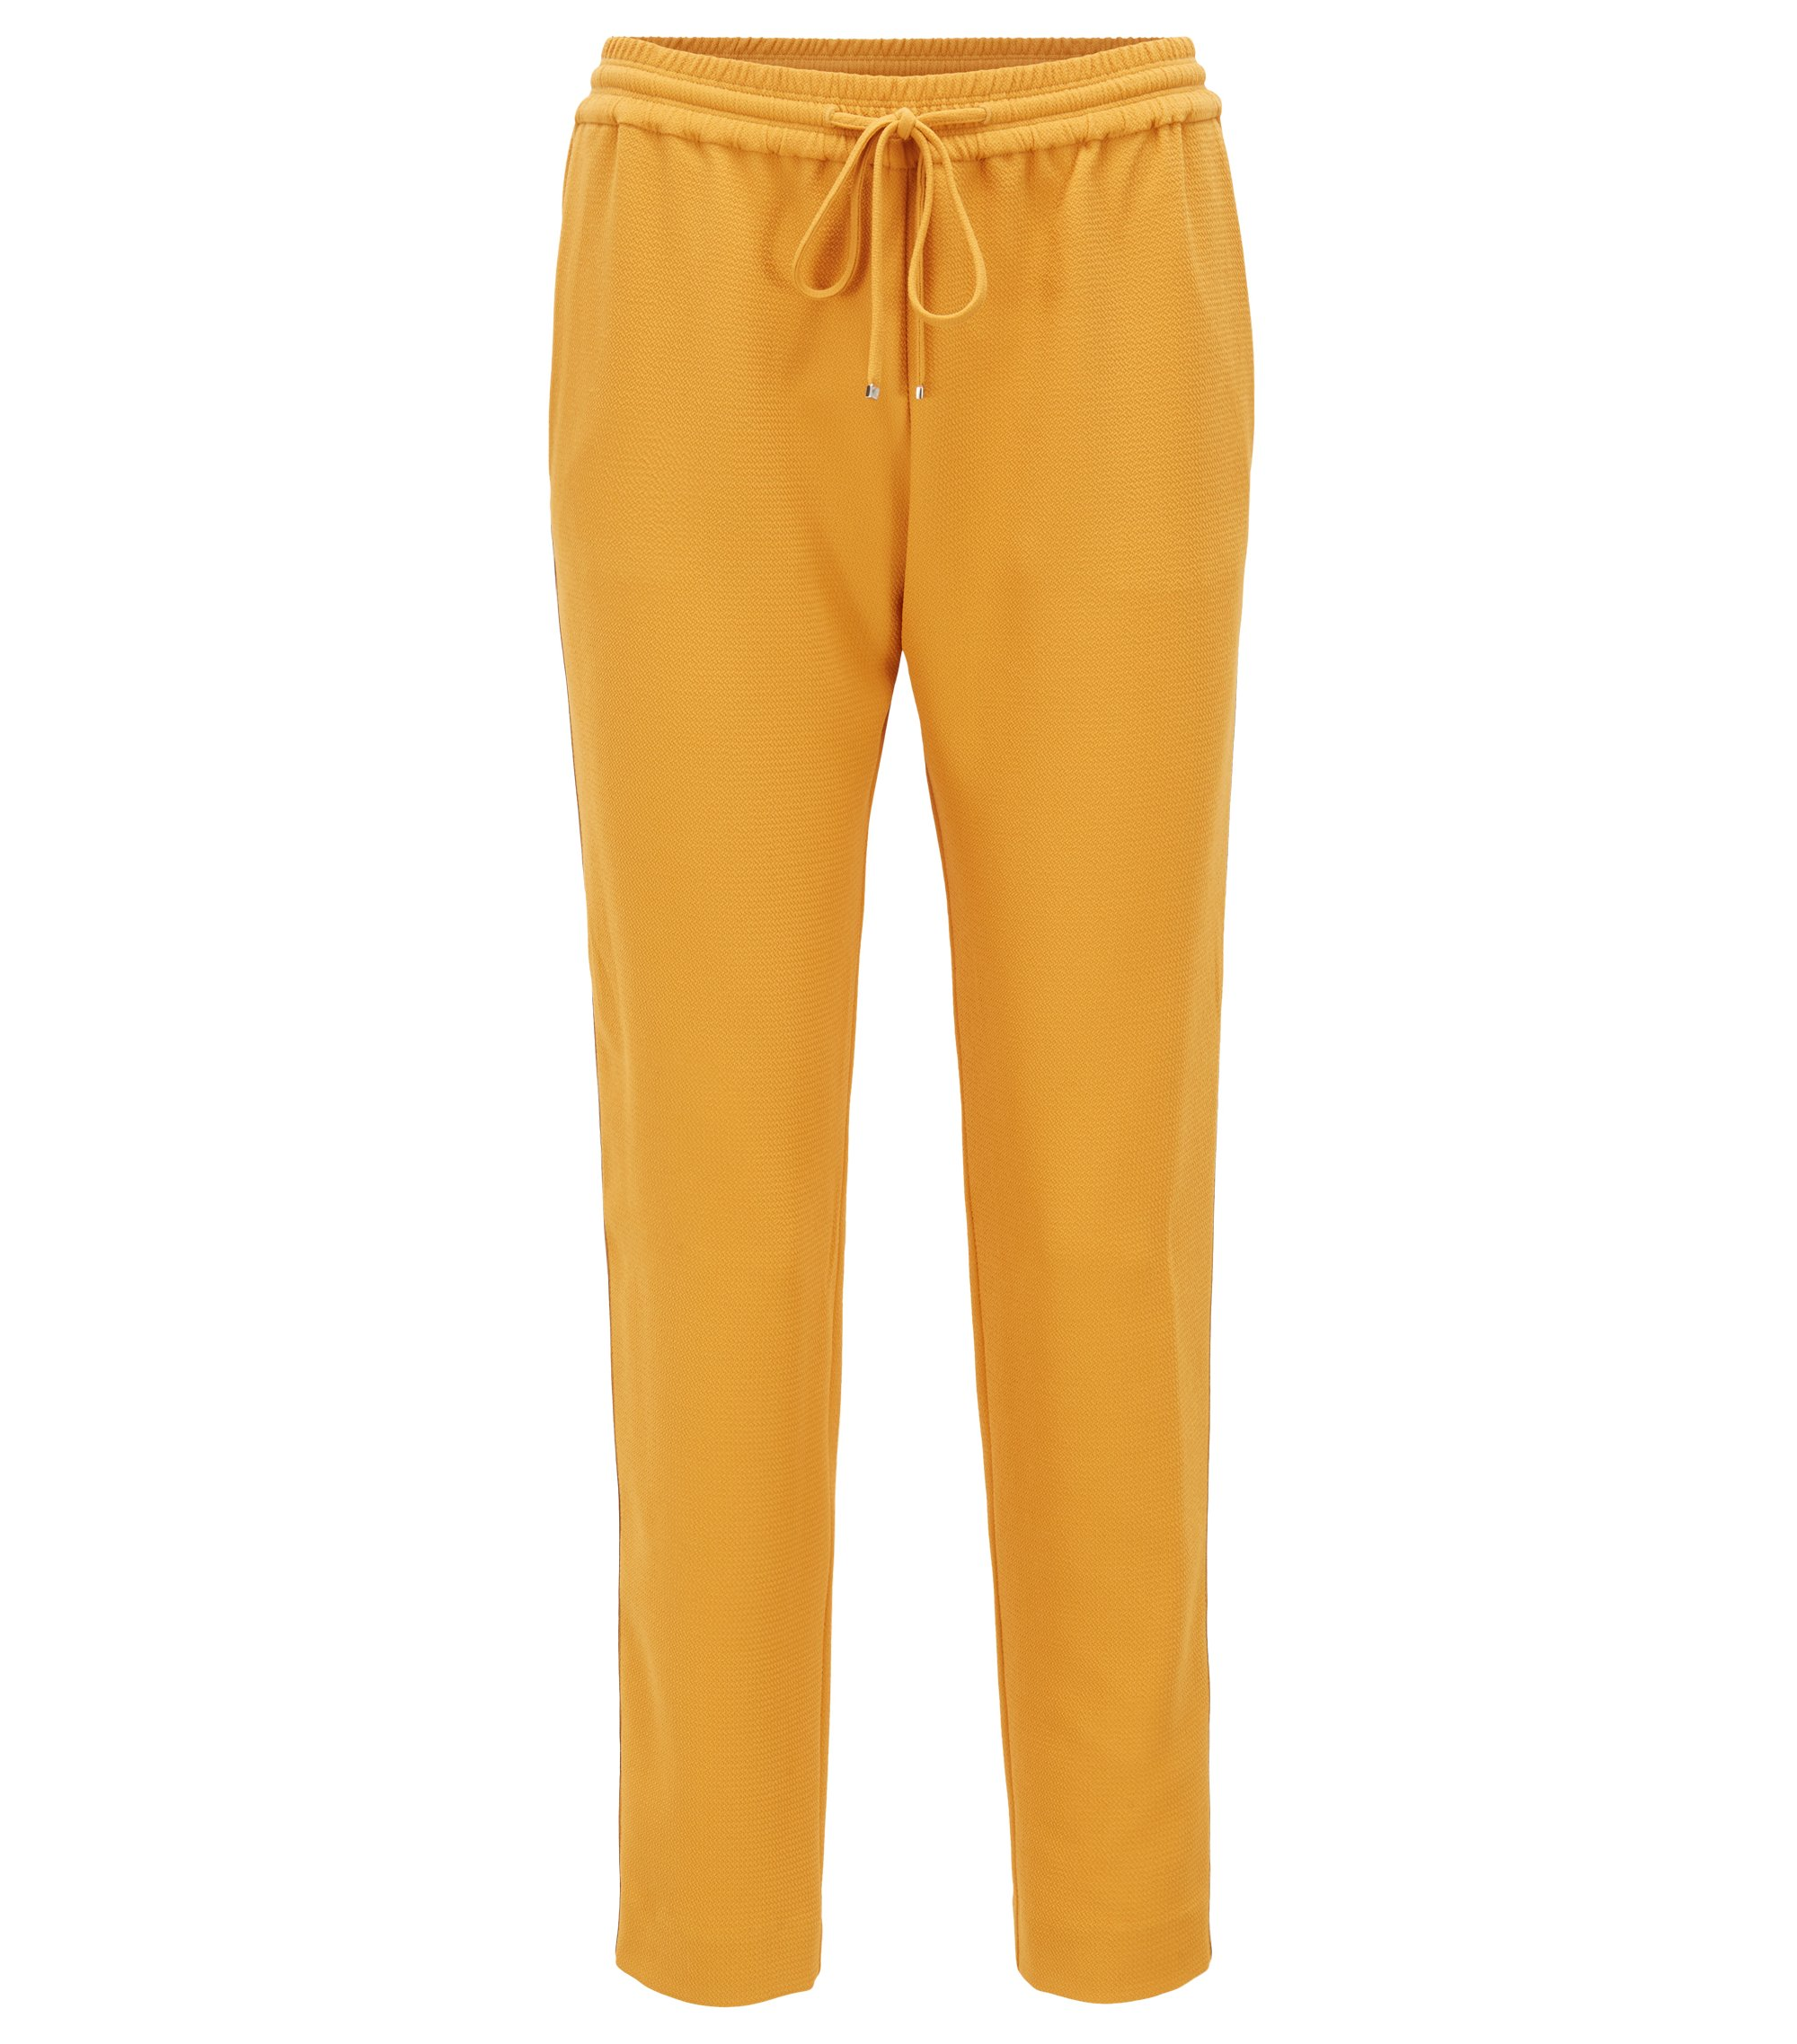 Pantaloni regular fit in crêpe con nastro laterale, Oro